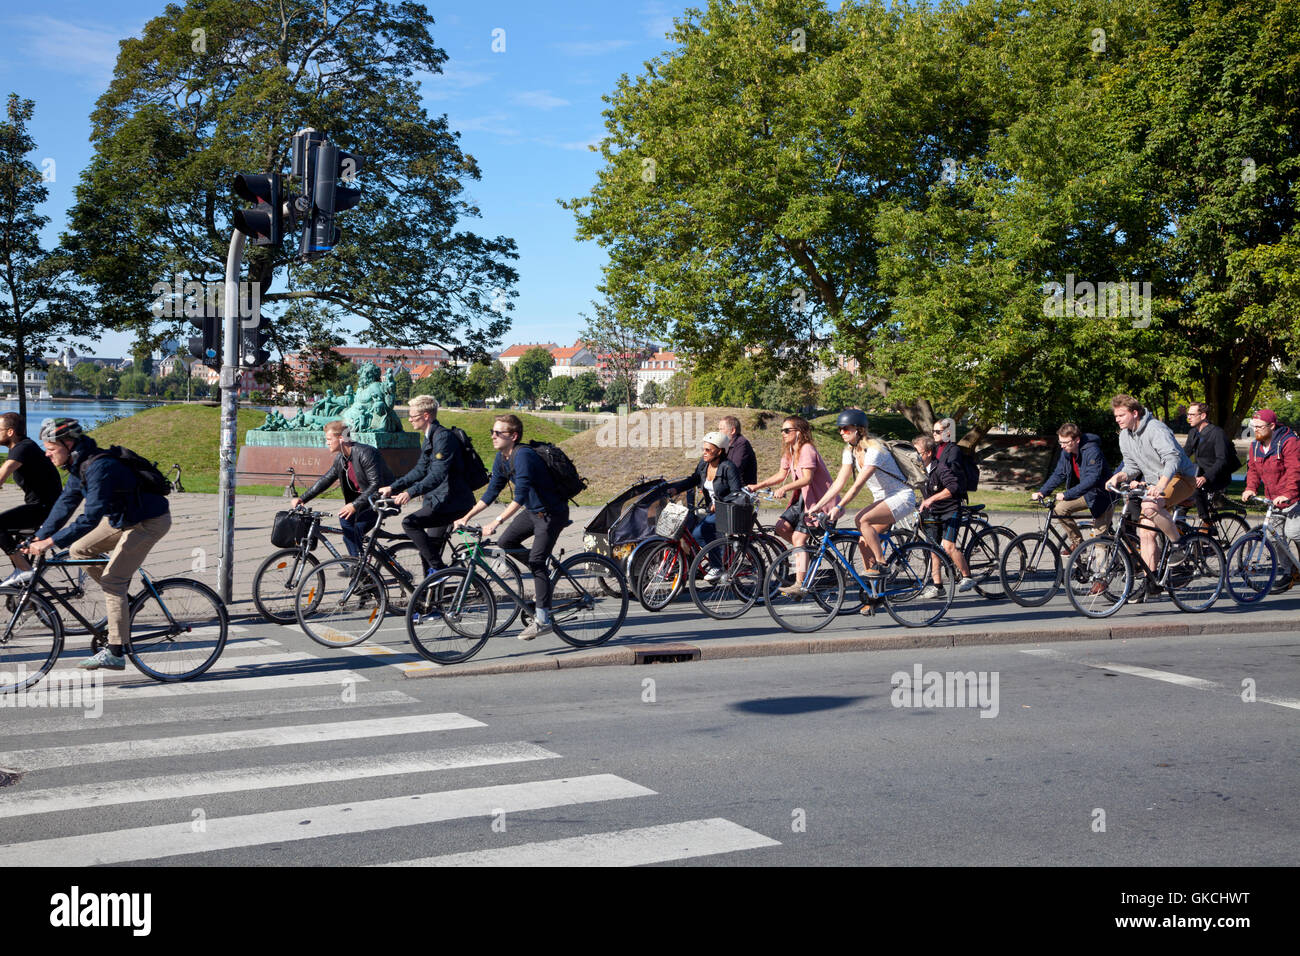 Summer late morning bicycle rush on the heavily trafficked bicycle path at the lakes, Frederiksborggade, Søtorvet, - Stock Image